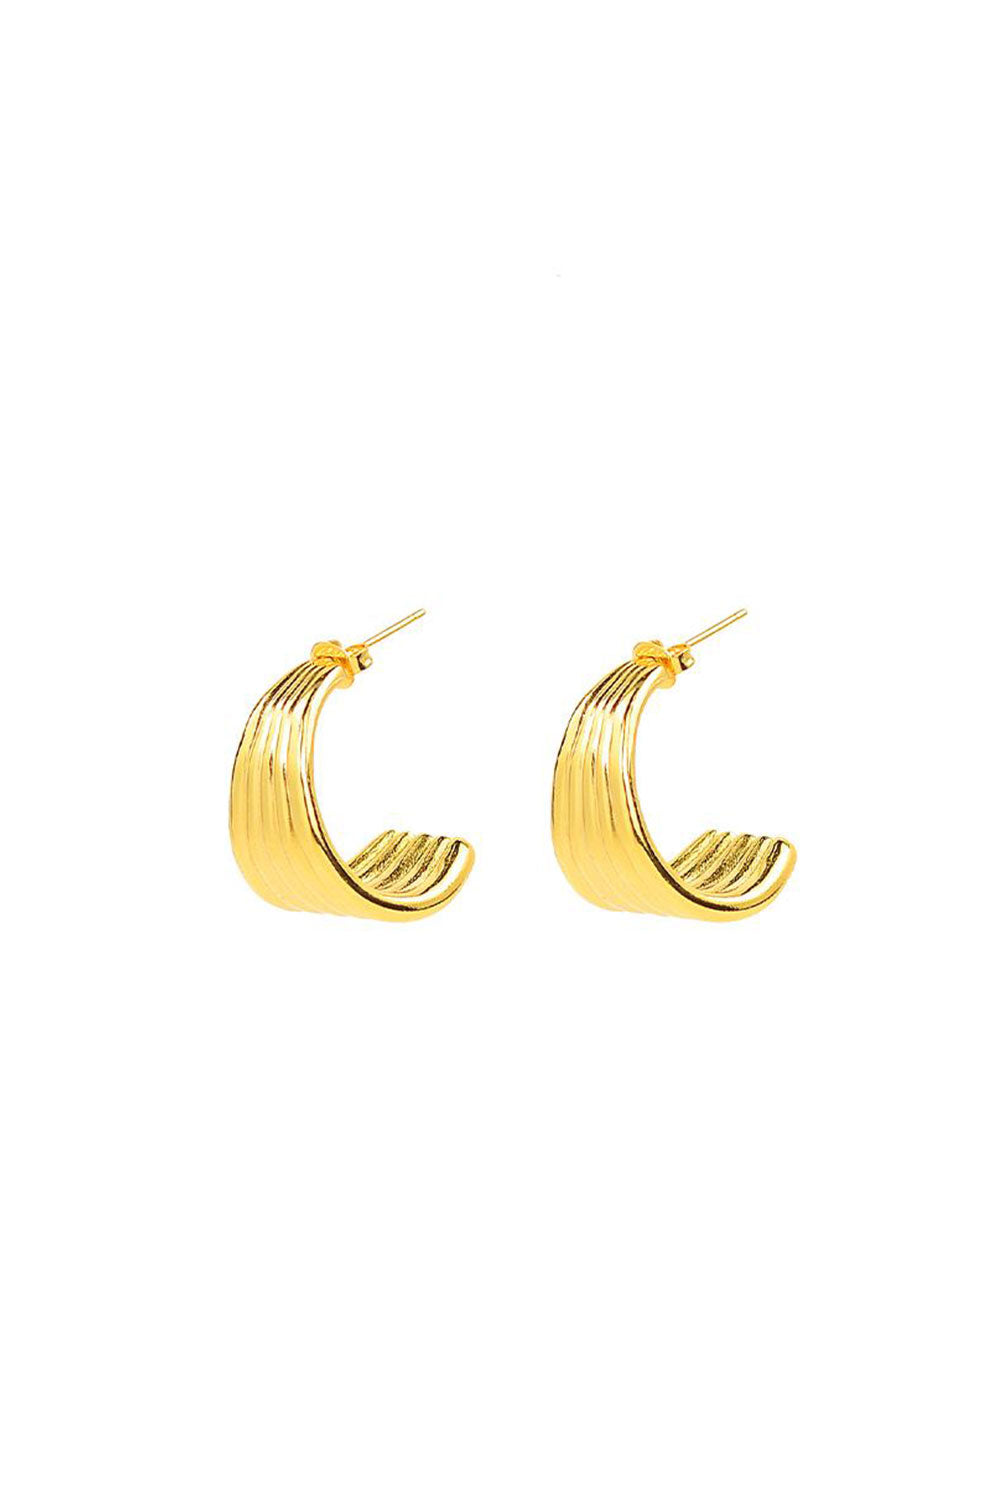 DEMI STUDS | GOLD | BRIE LEON NZ | Jewellery NZ | Black Box Boutique Auckland | Womens Fashion NZ